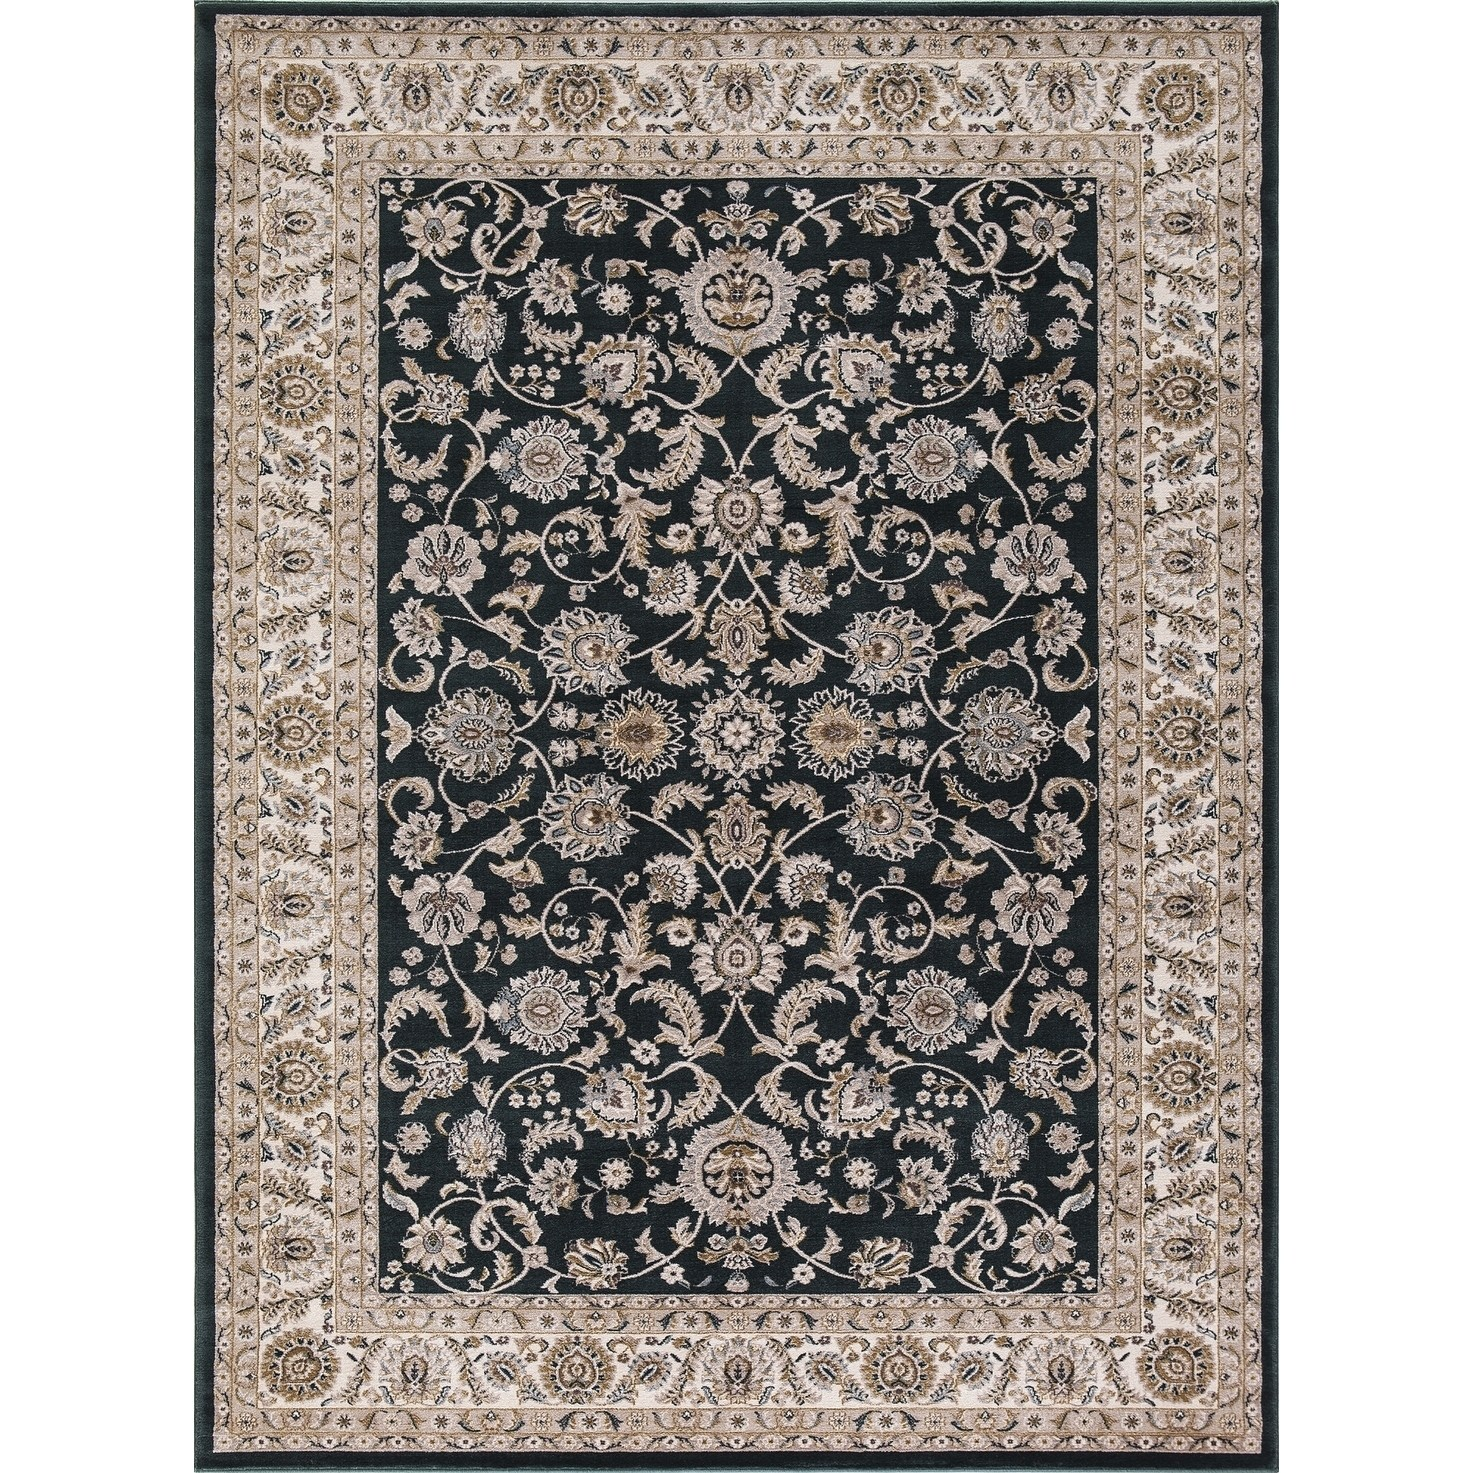 Concord Global Trading Kashan Collections Bergama Area Rug